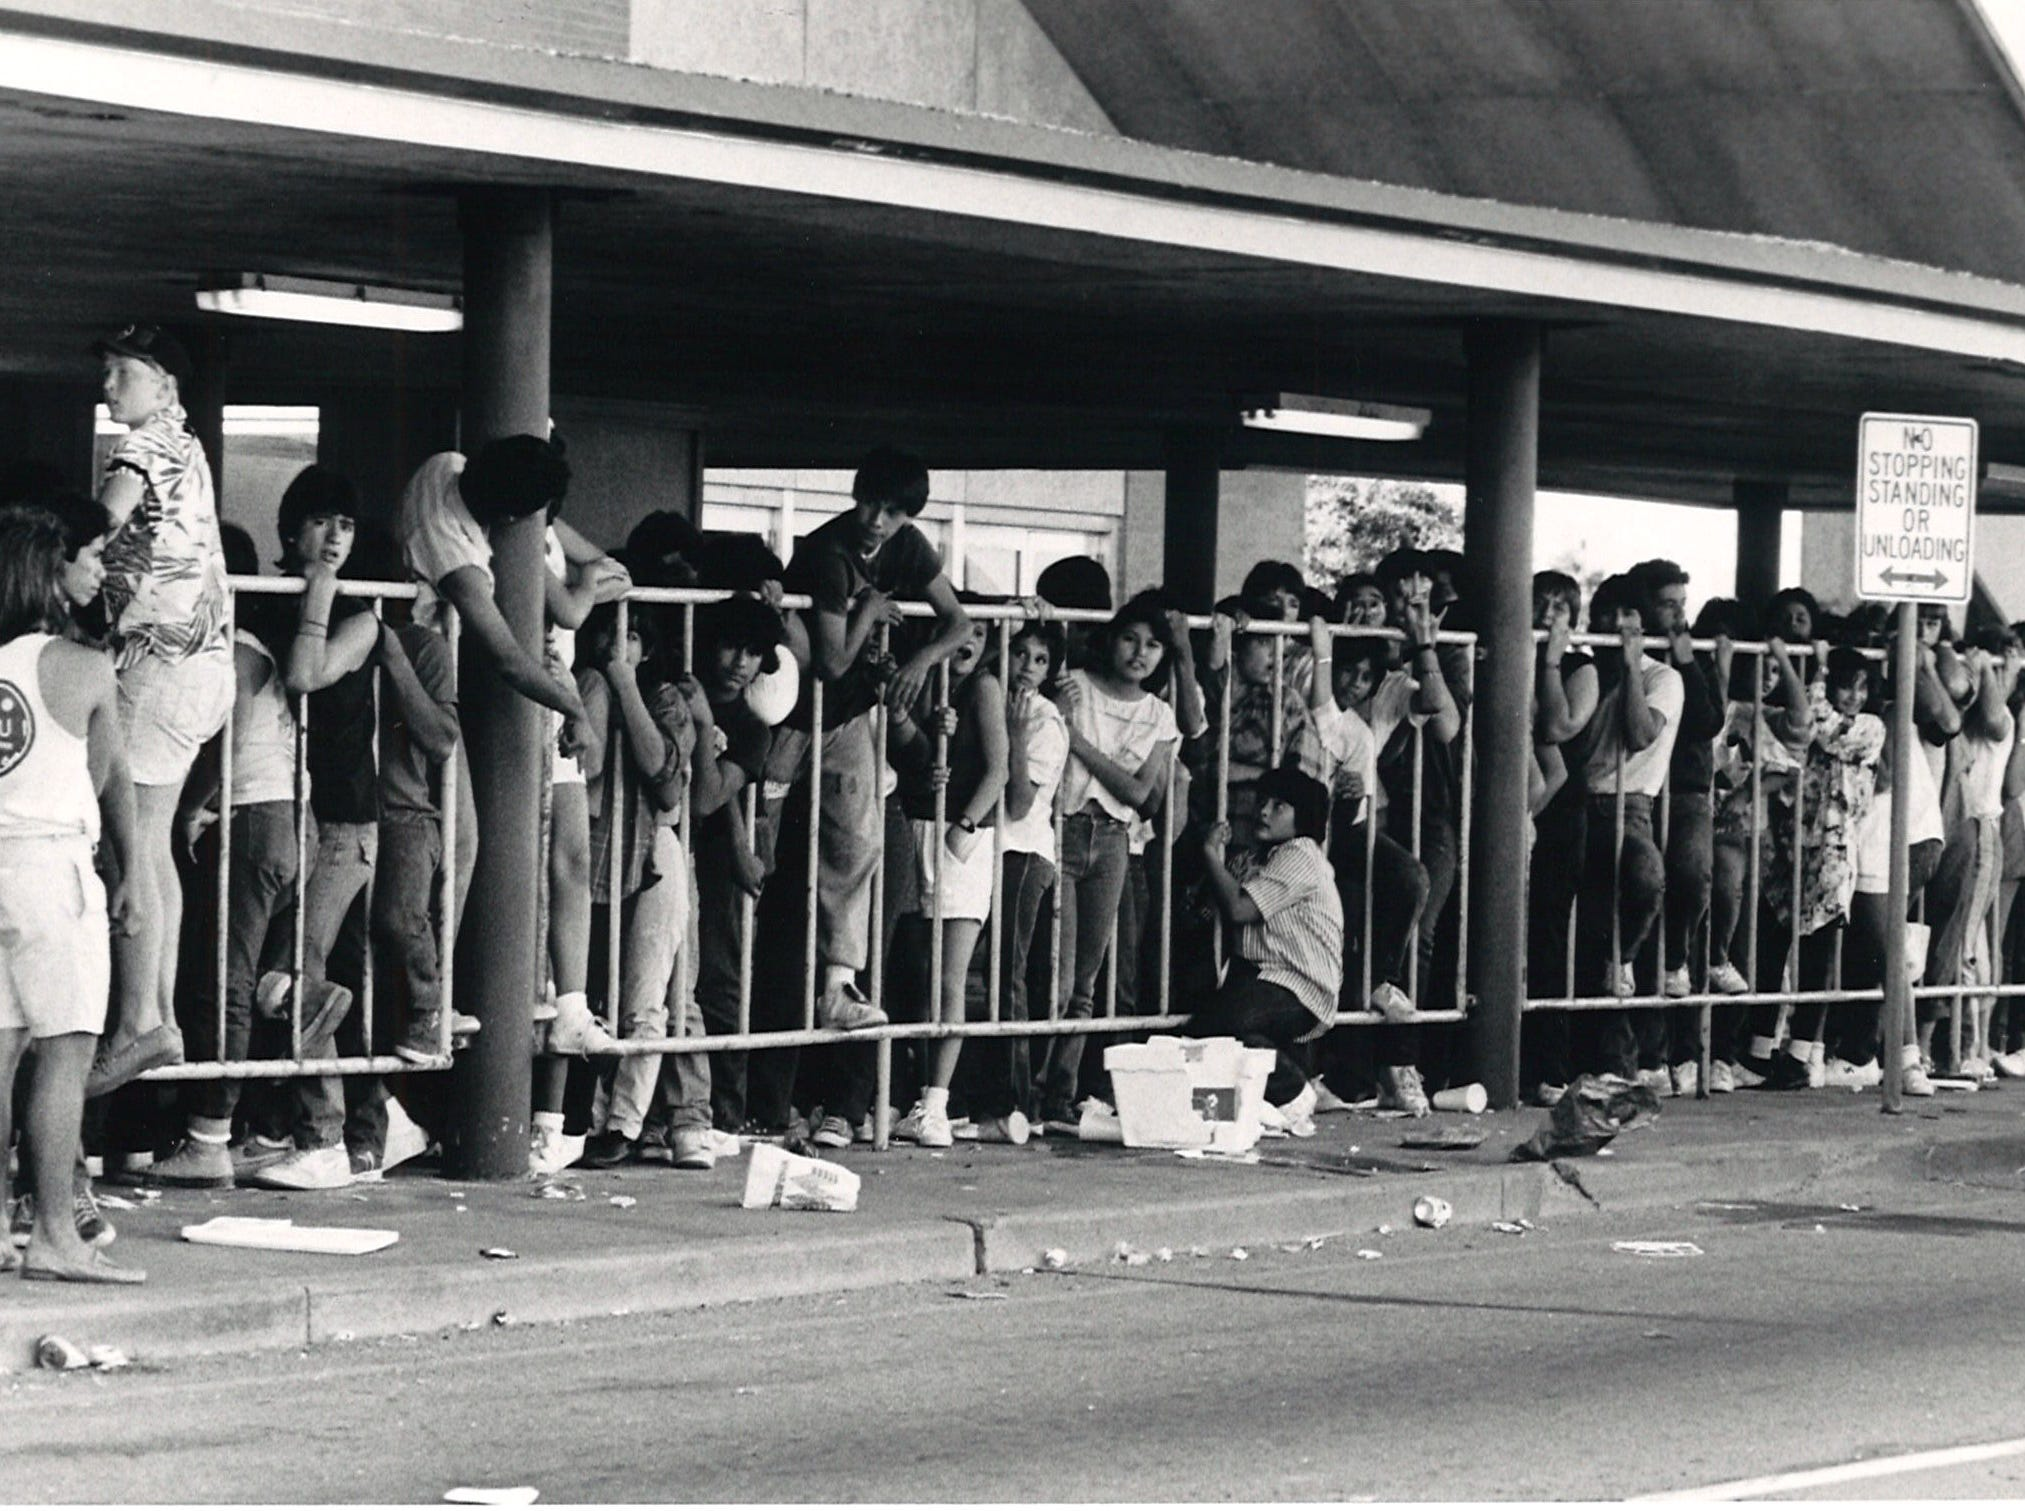 A crowd gathered in front of Memorial Coliseum in Corpus Christi on Oct. 5, 1985 as they waited for the Mötley Crüe concert.